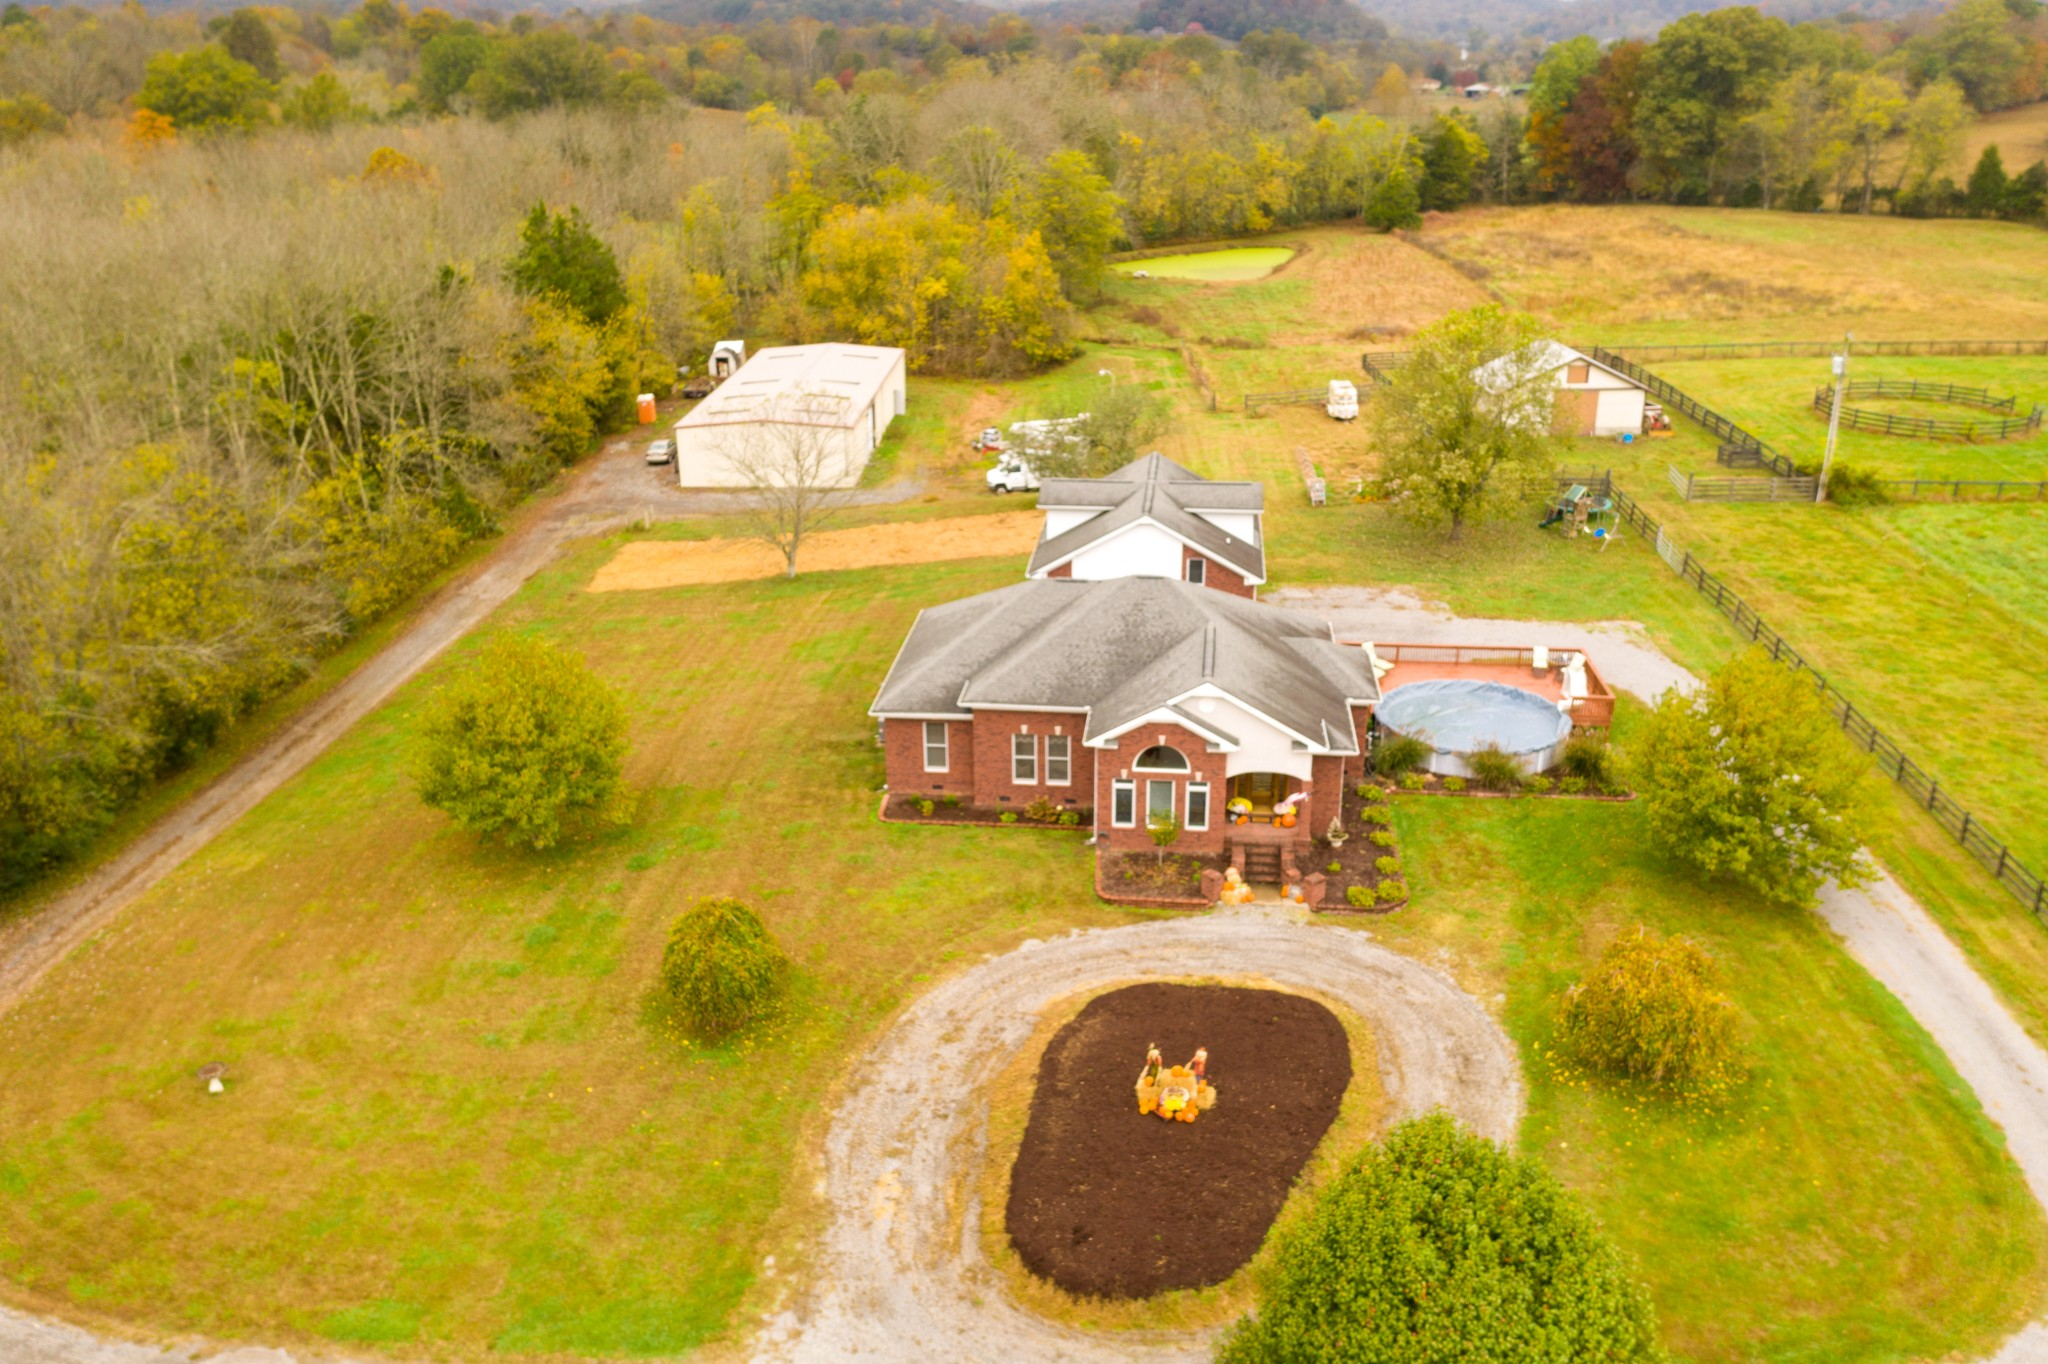 Custom Built Brick Home On Over 6 Acres With Barn And Pond!  1945 Upper Station Camp Creek Rd., Cottontown, TN.  37048